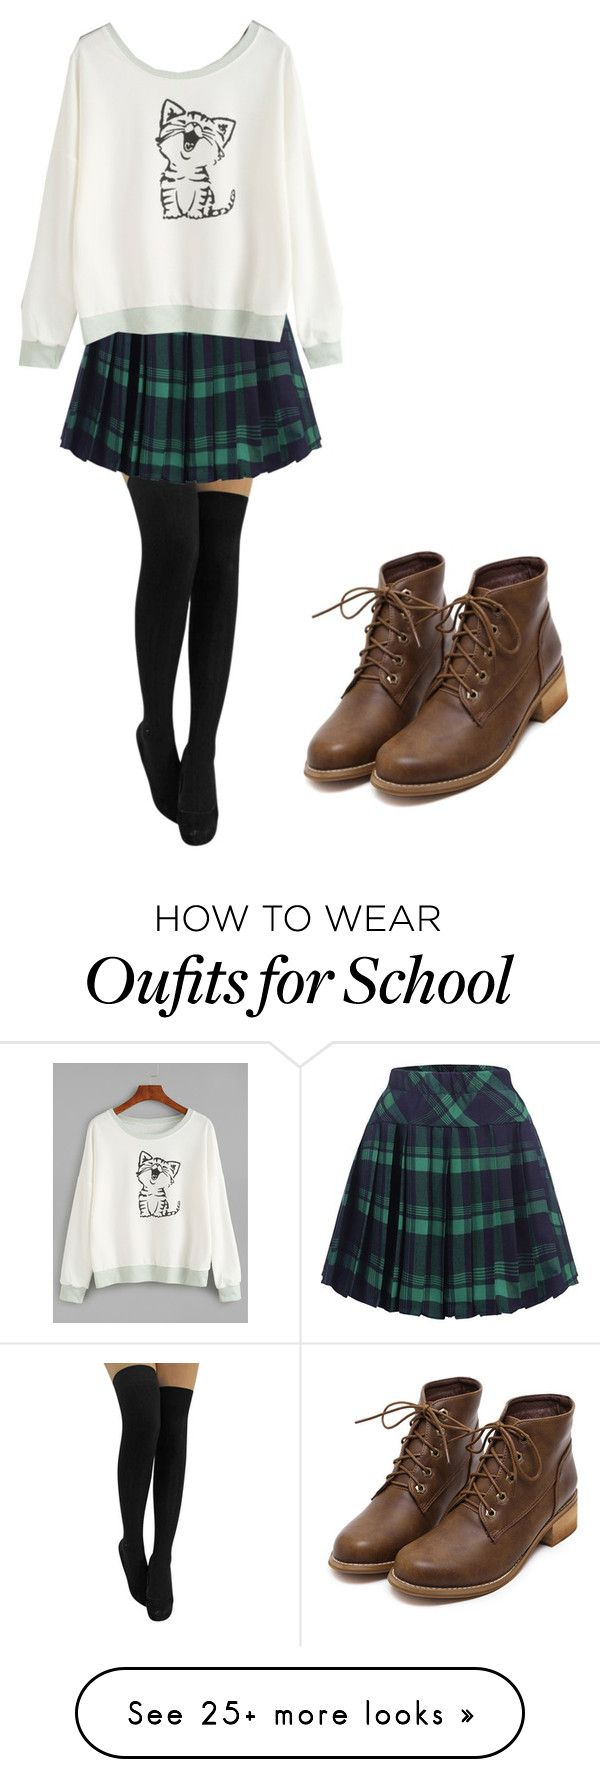 """Comfy Weekend"" by emmas388 on Polyvore featuring casual"